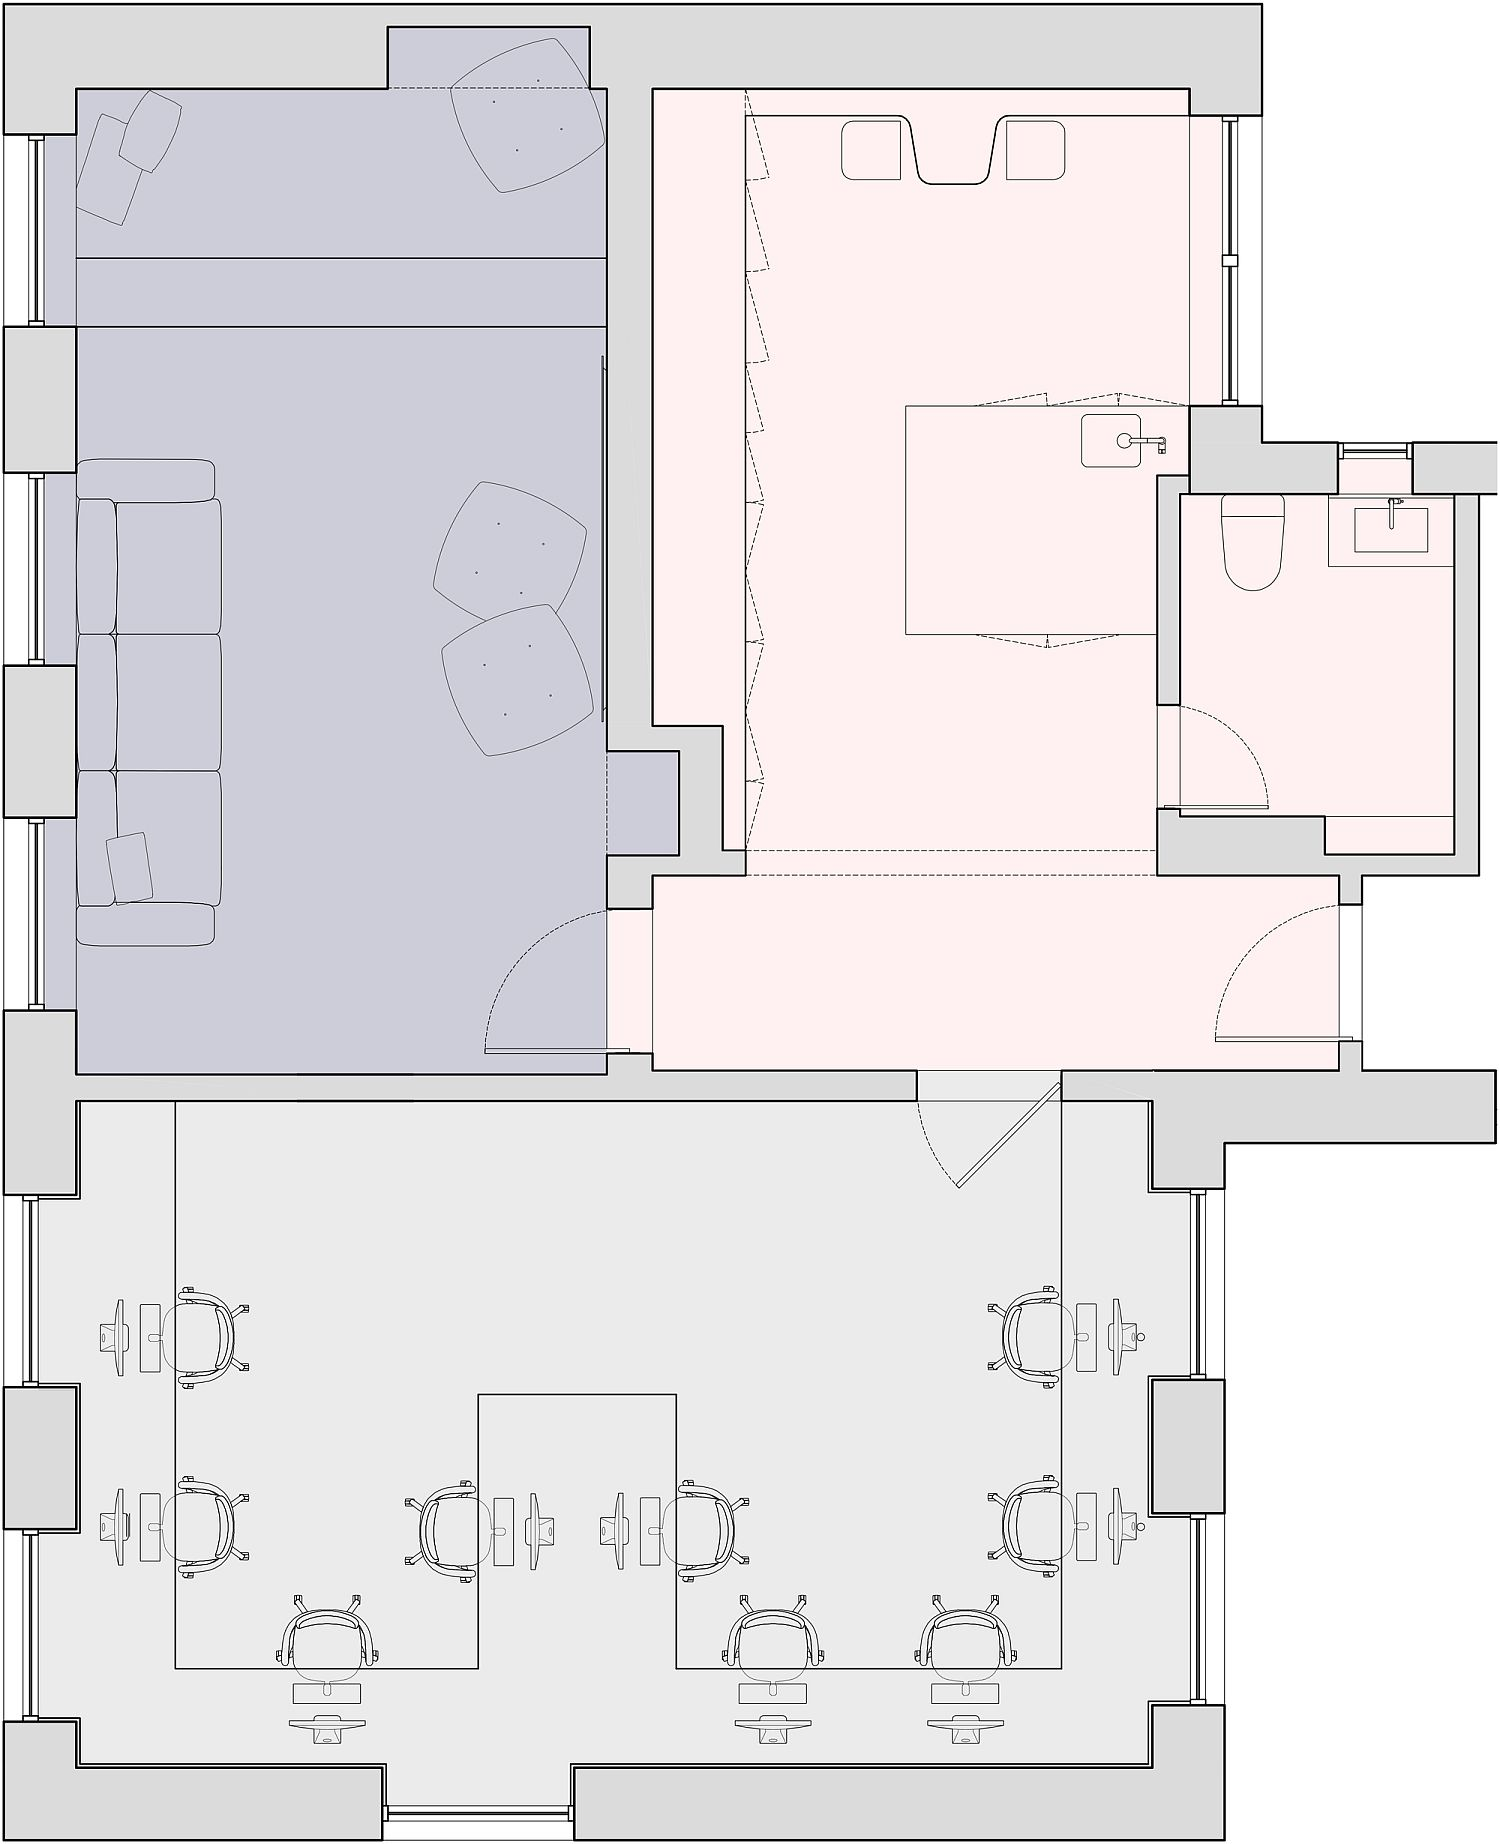 Floor plan of Objective Subject Offices